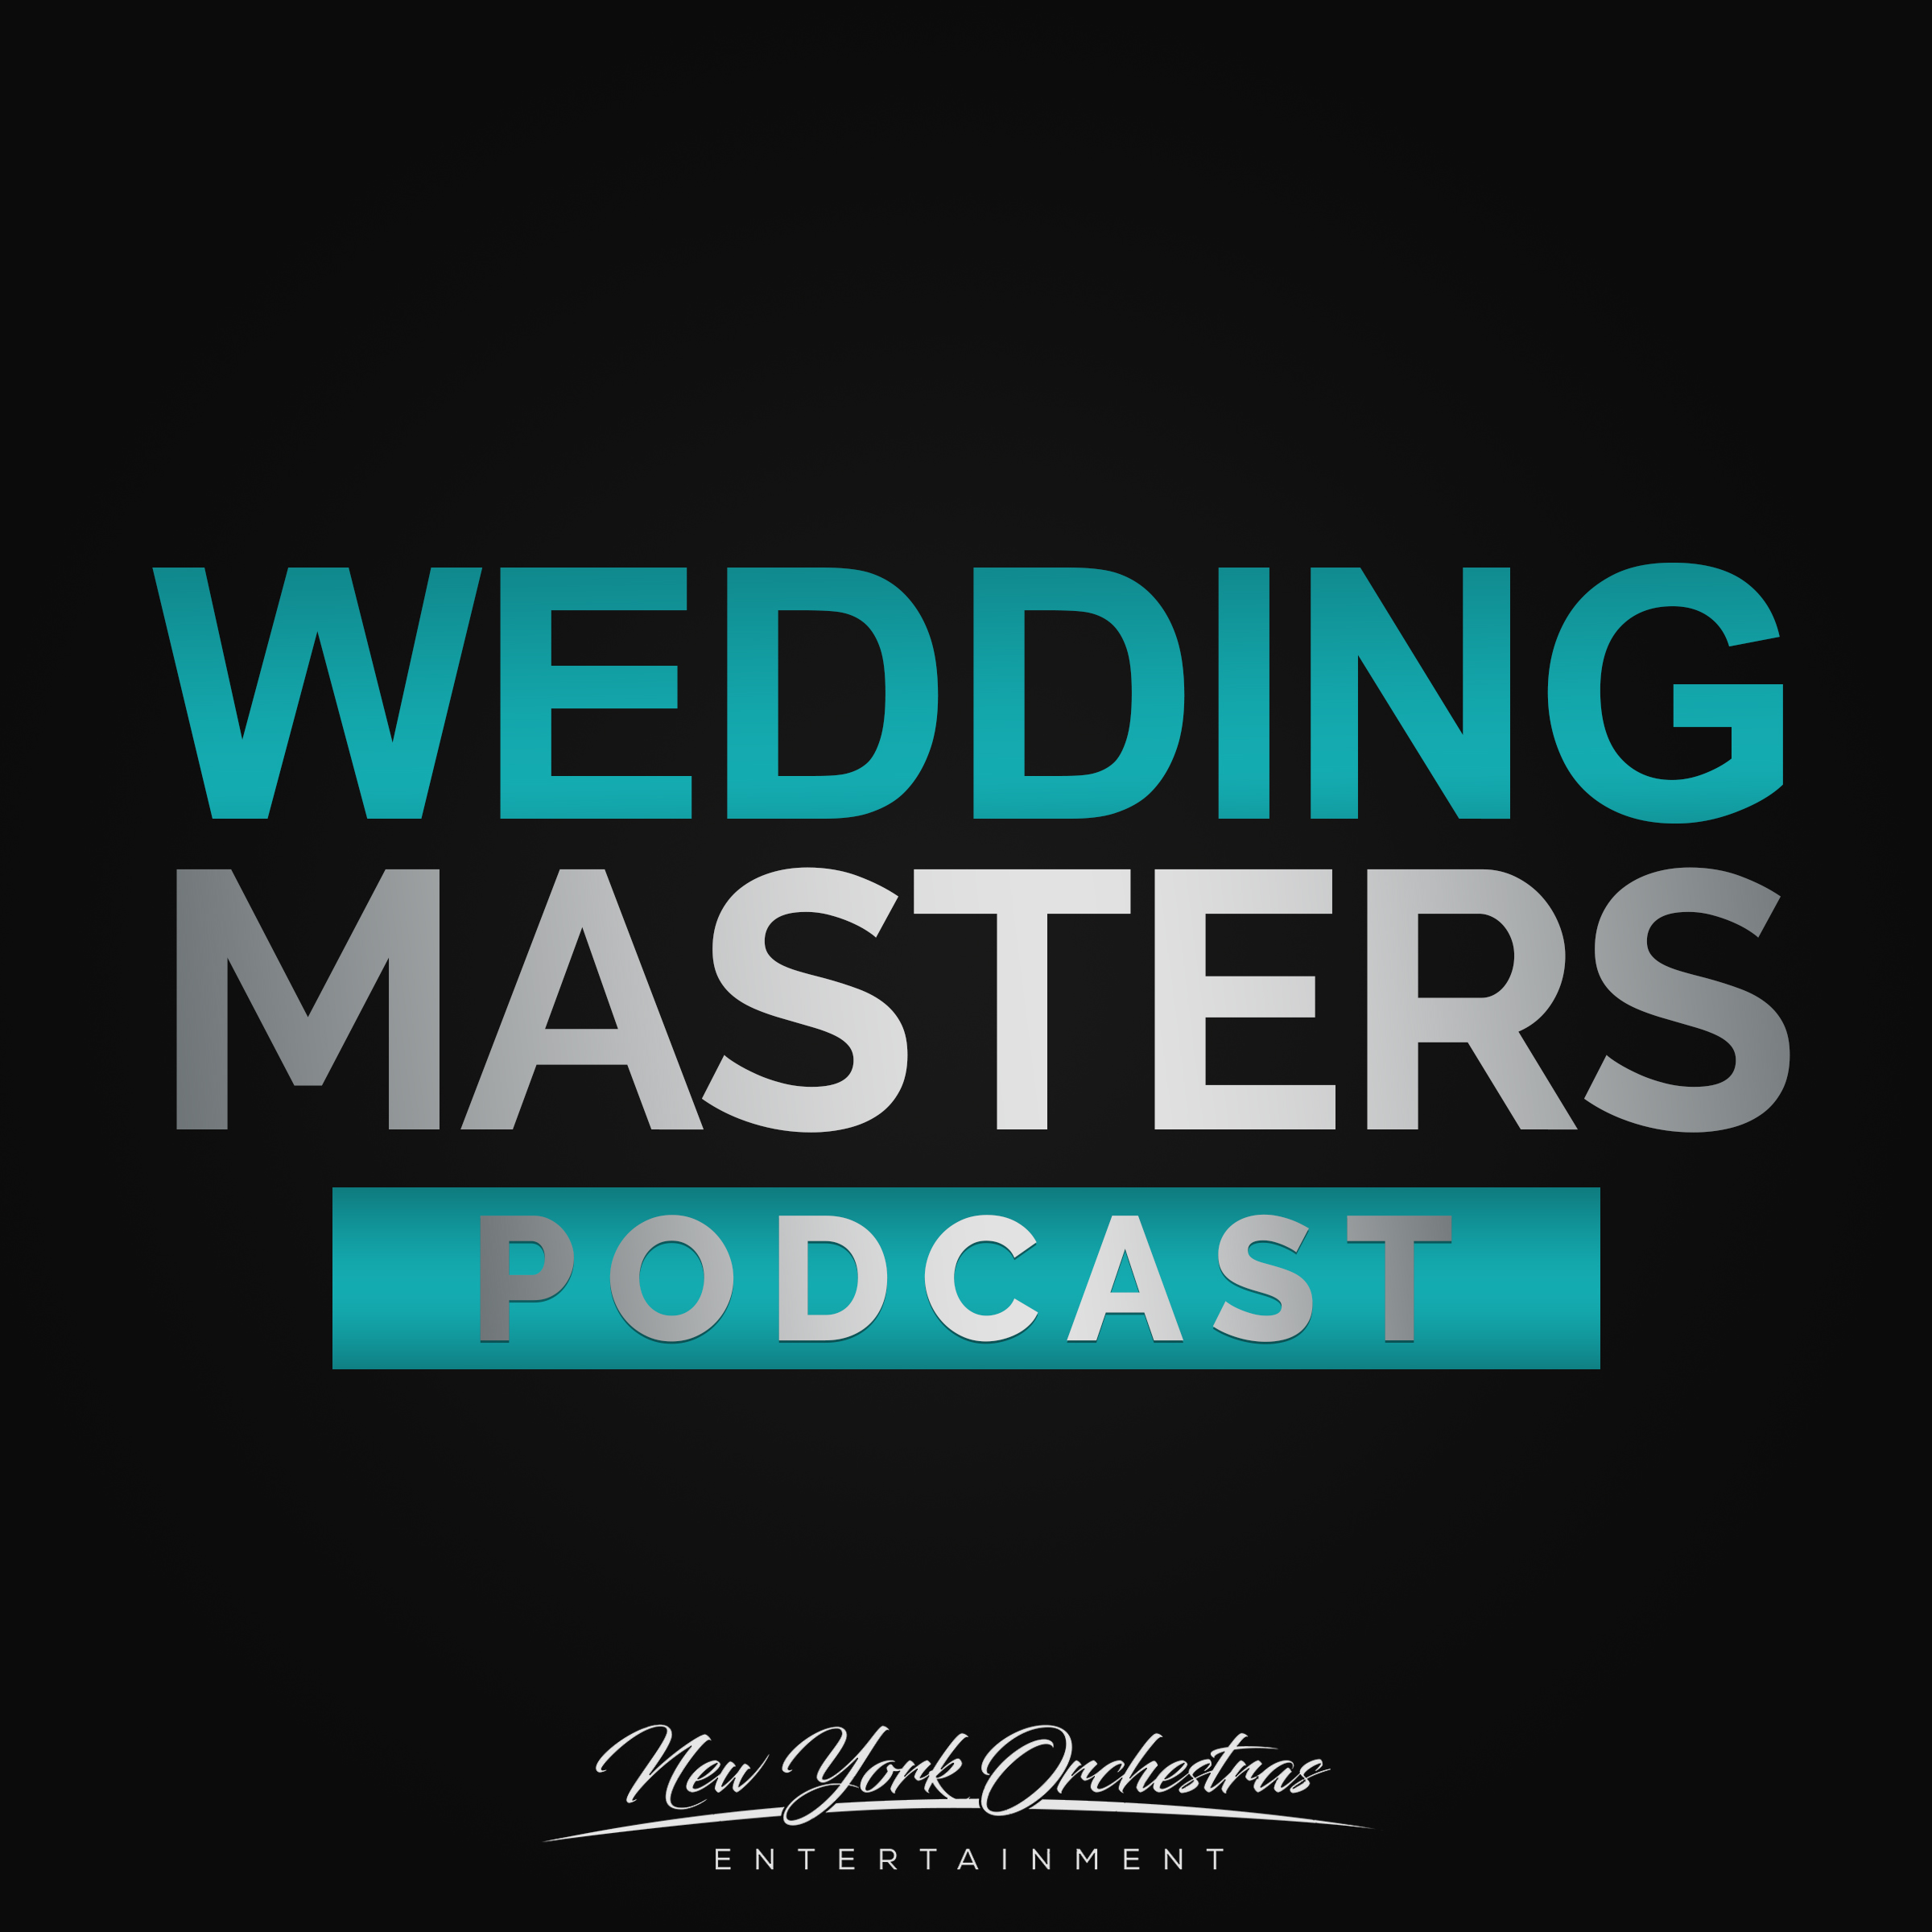 weddingmasters4-1